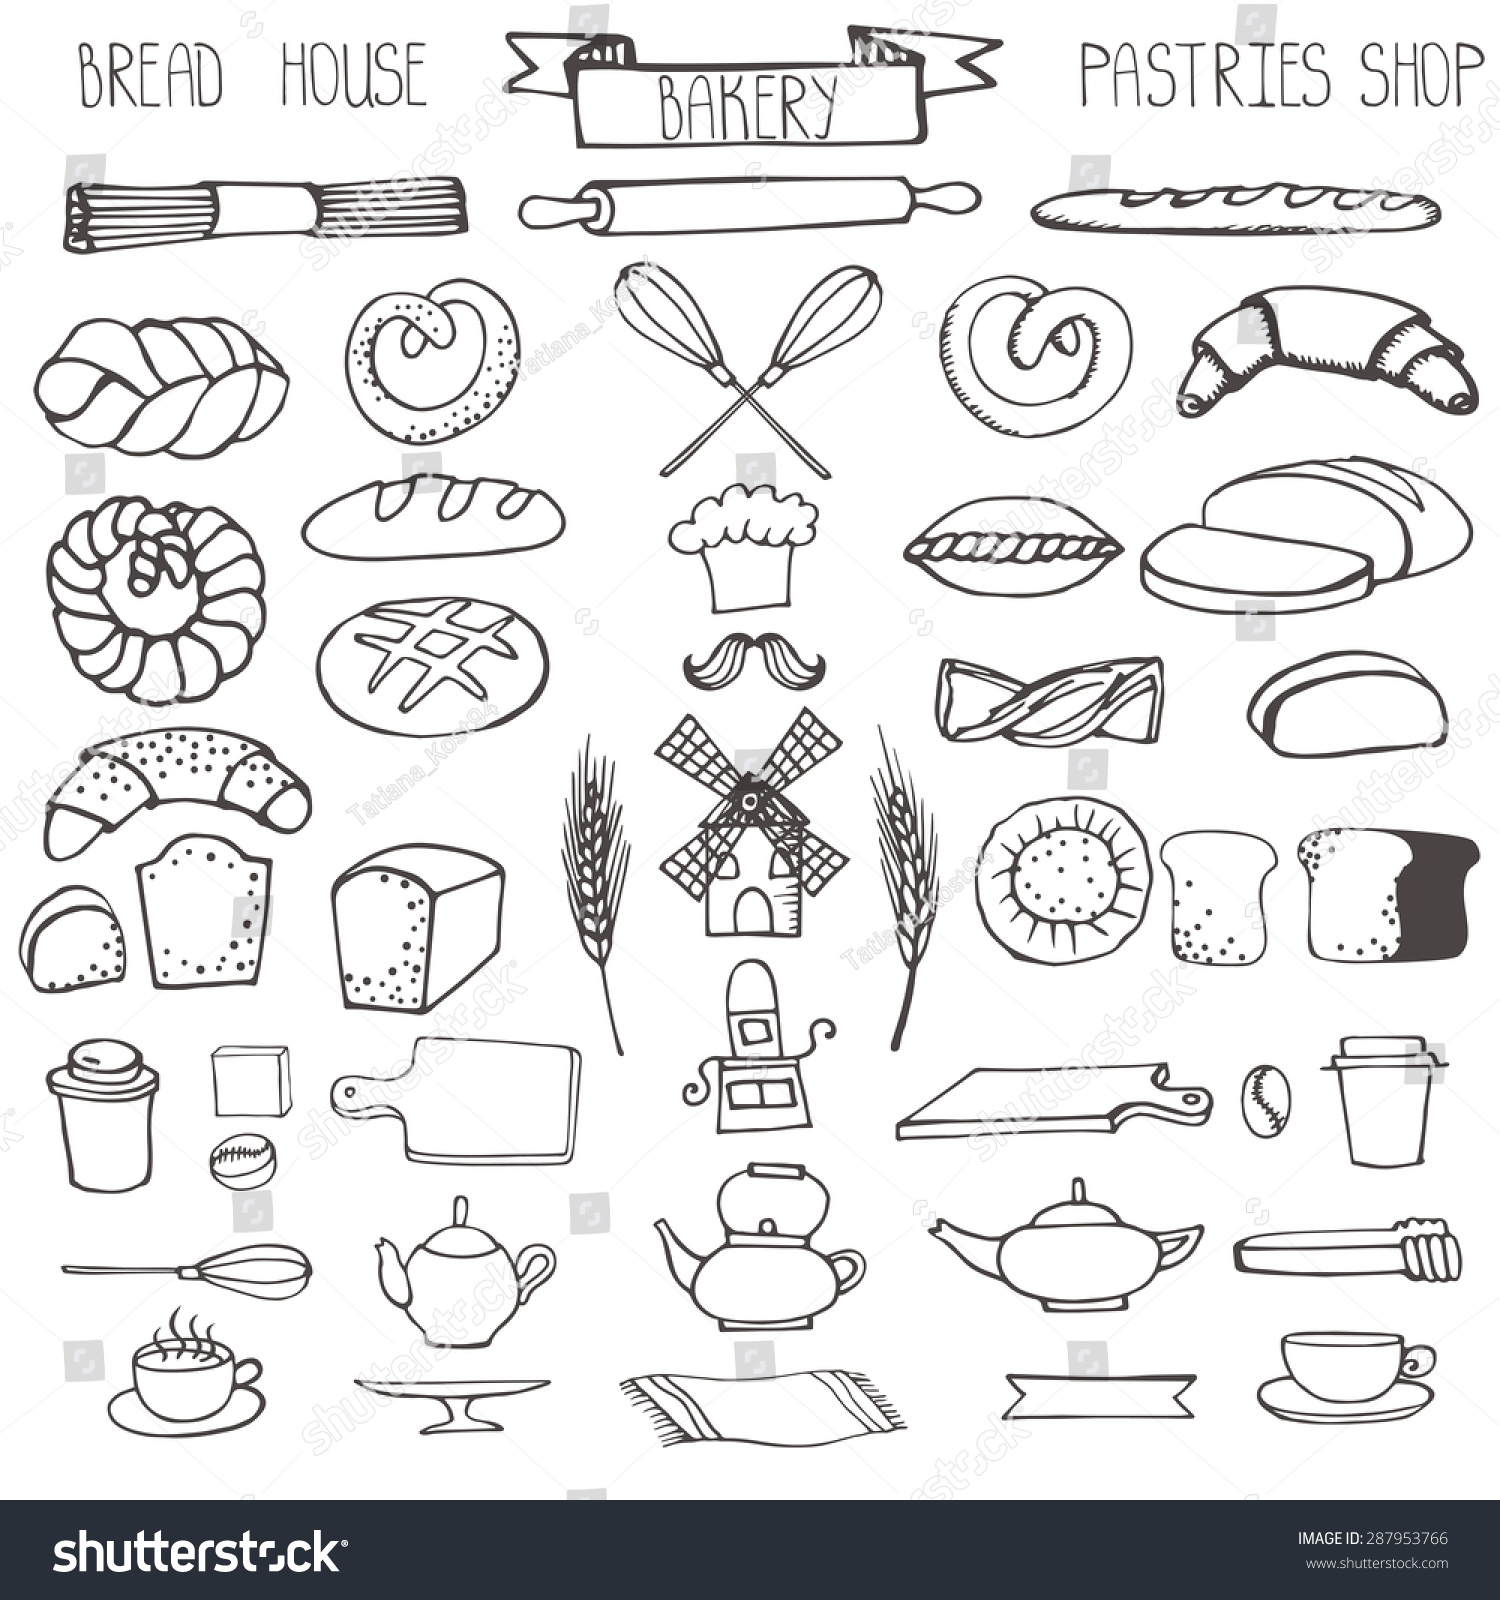 Bread Bakery Doodle Vector Pastries Icons Set Linear Stock Vector ...